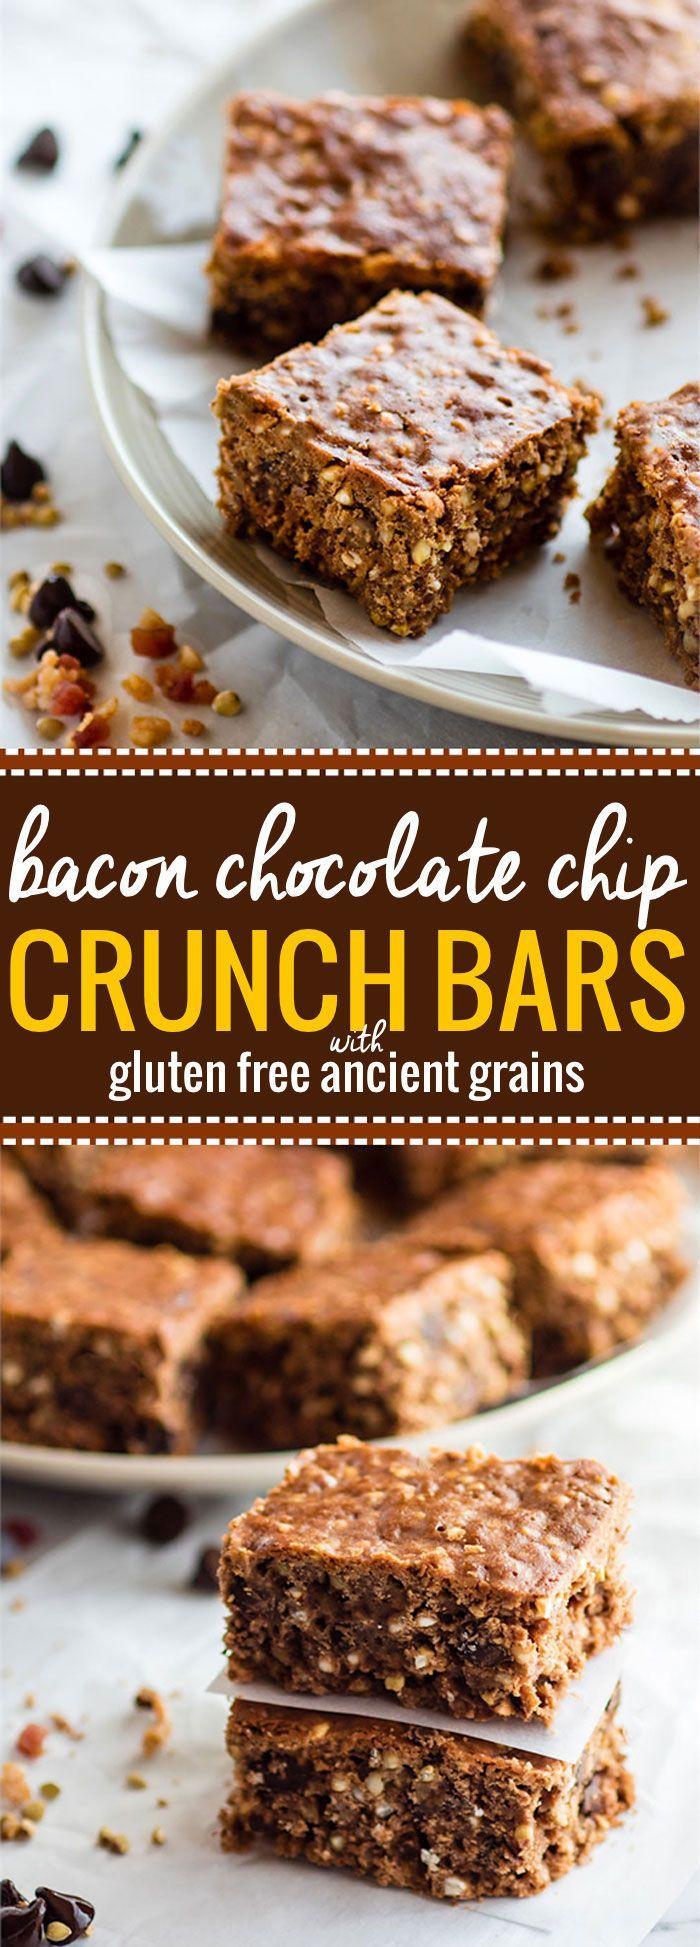 """Bacon Chocolate Chip homemade Crunch Bars! The original """"crunch"""" bar just got an upgrade! These gluten free crunch bars are and made with uncured bacon bits, dark chocolate chips, cocoa, and ancient grains! Sweet, crunchy, salty, and just plain DELICIOUS! @cottercrunch"""